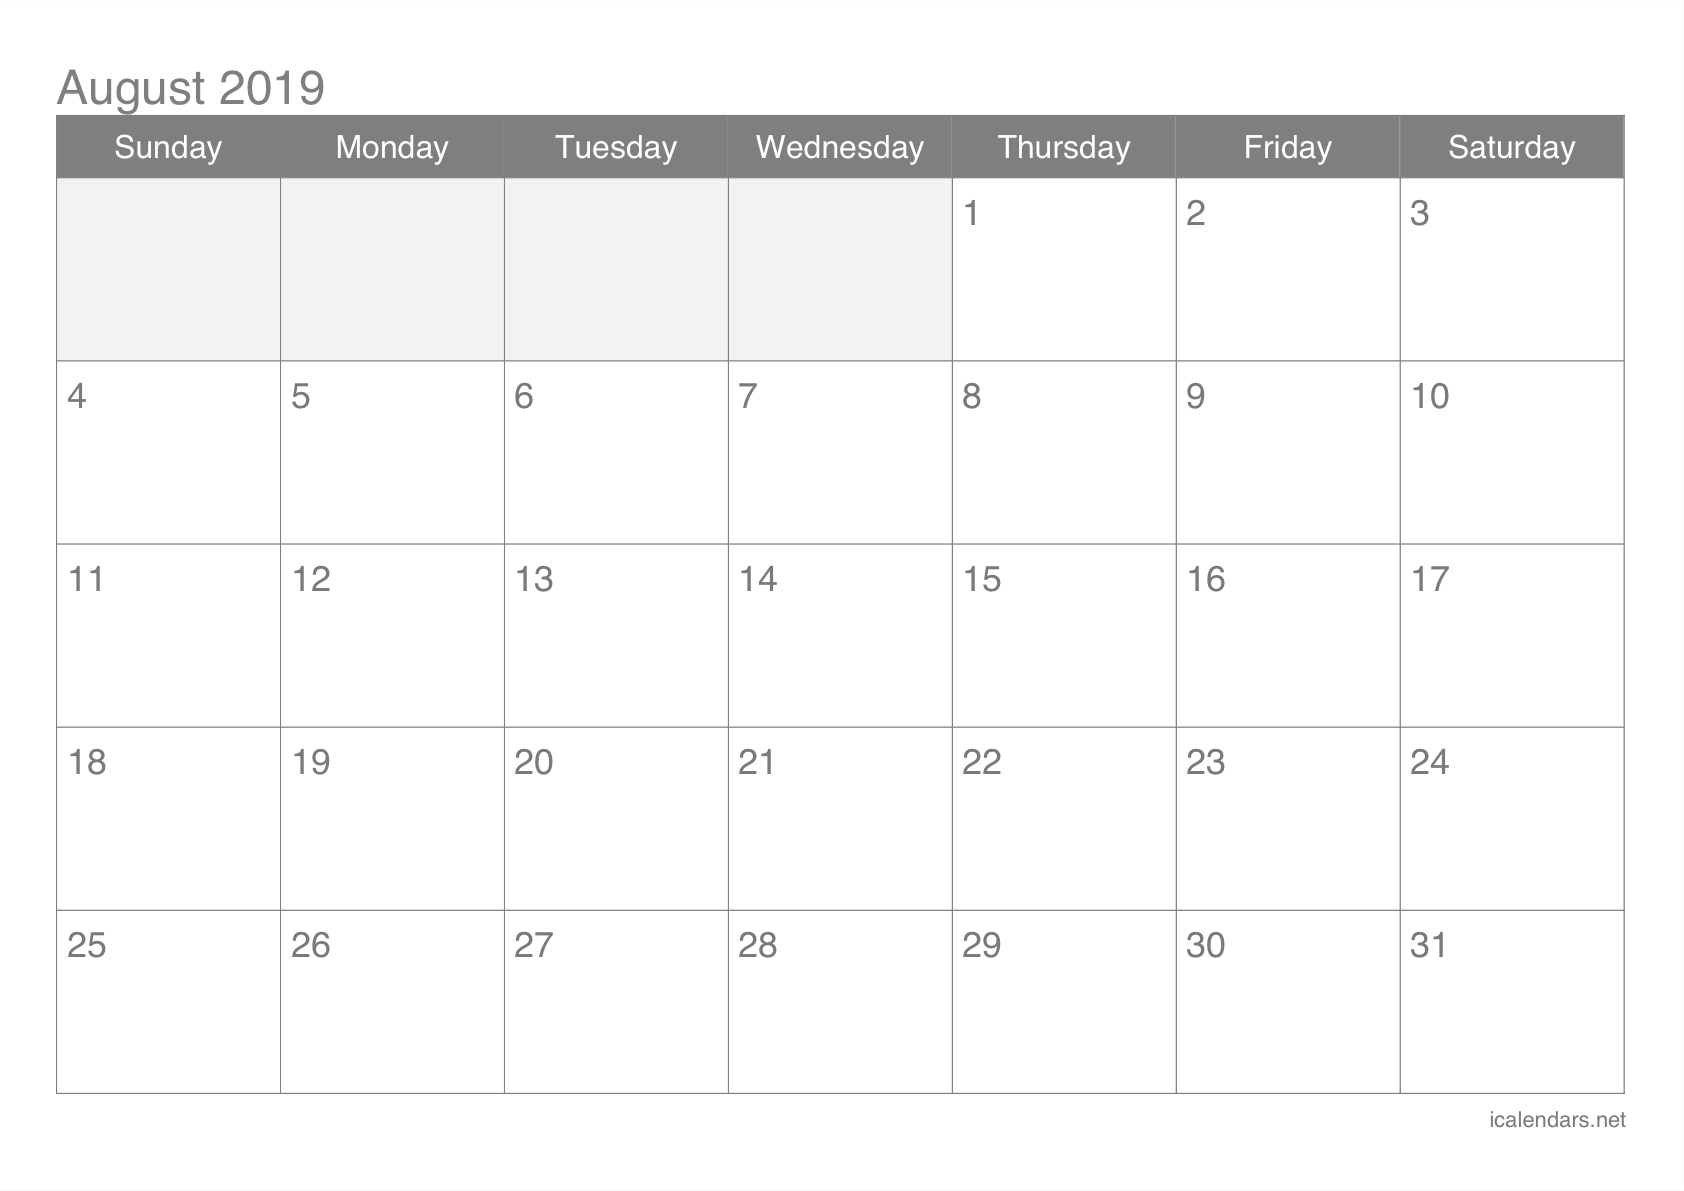 image relating to Calendar for Printable named August 2019 Printable Calendar -